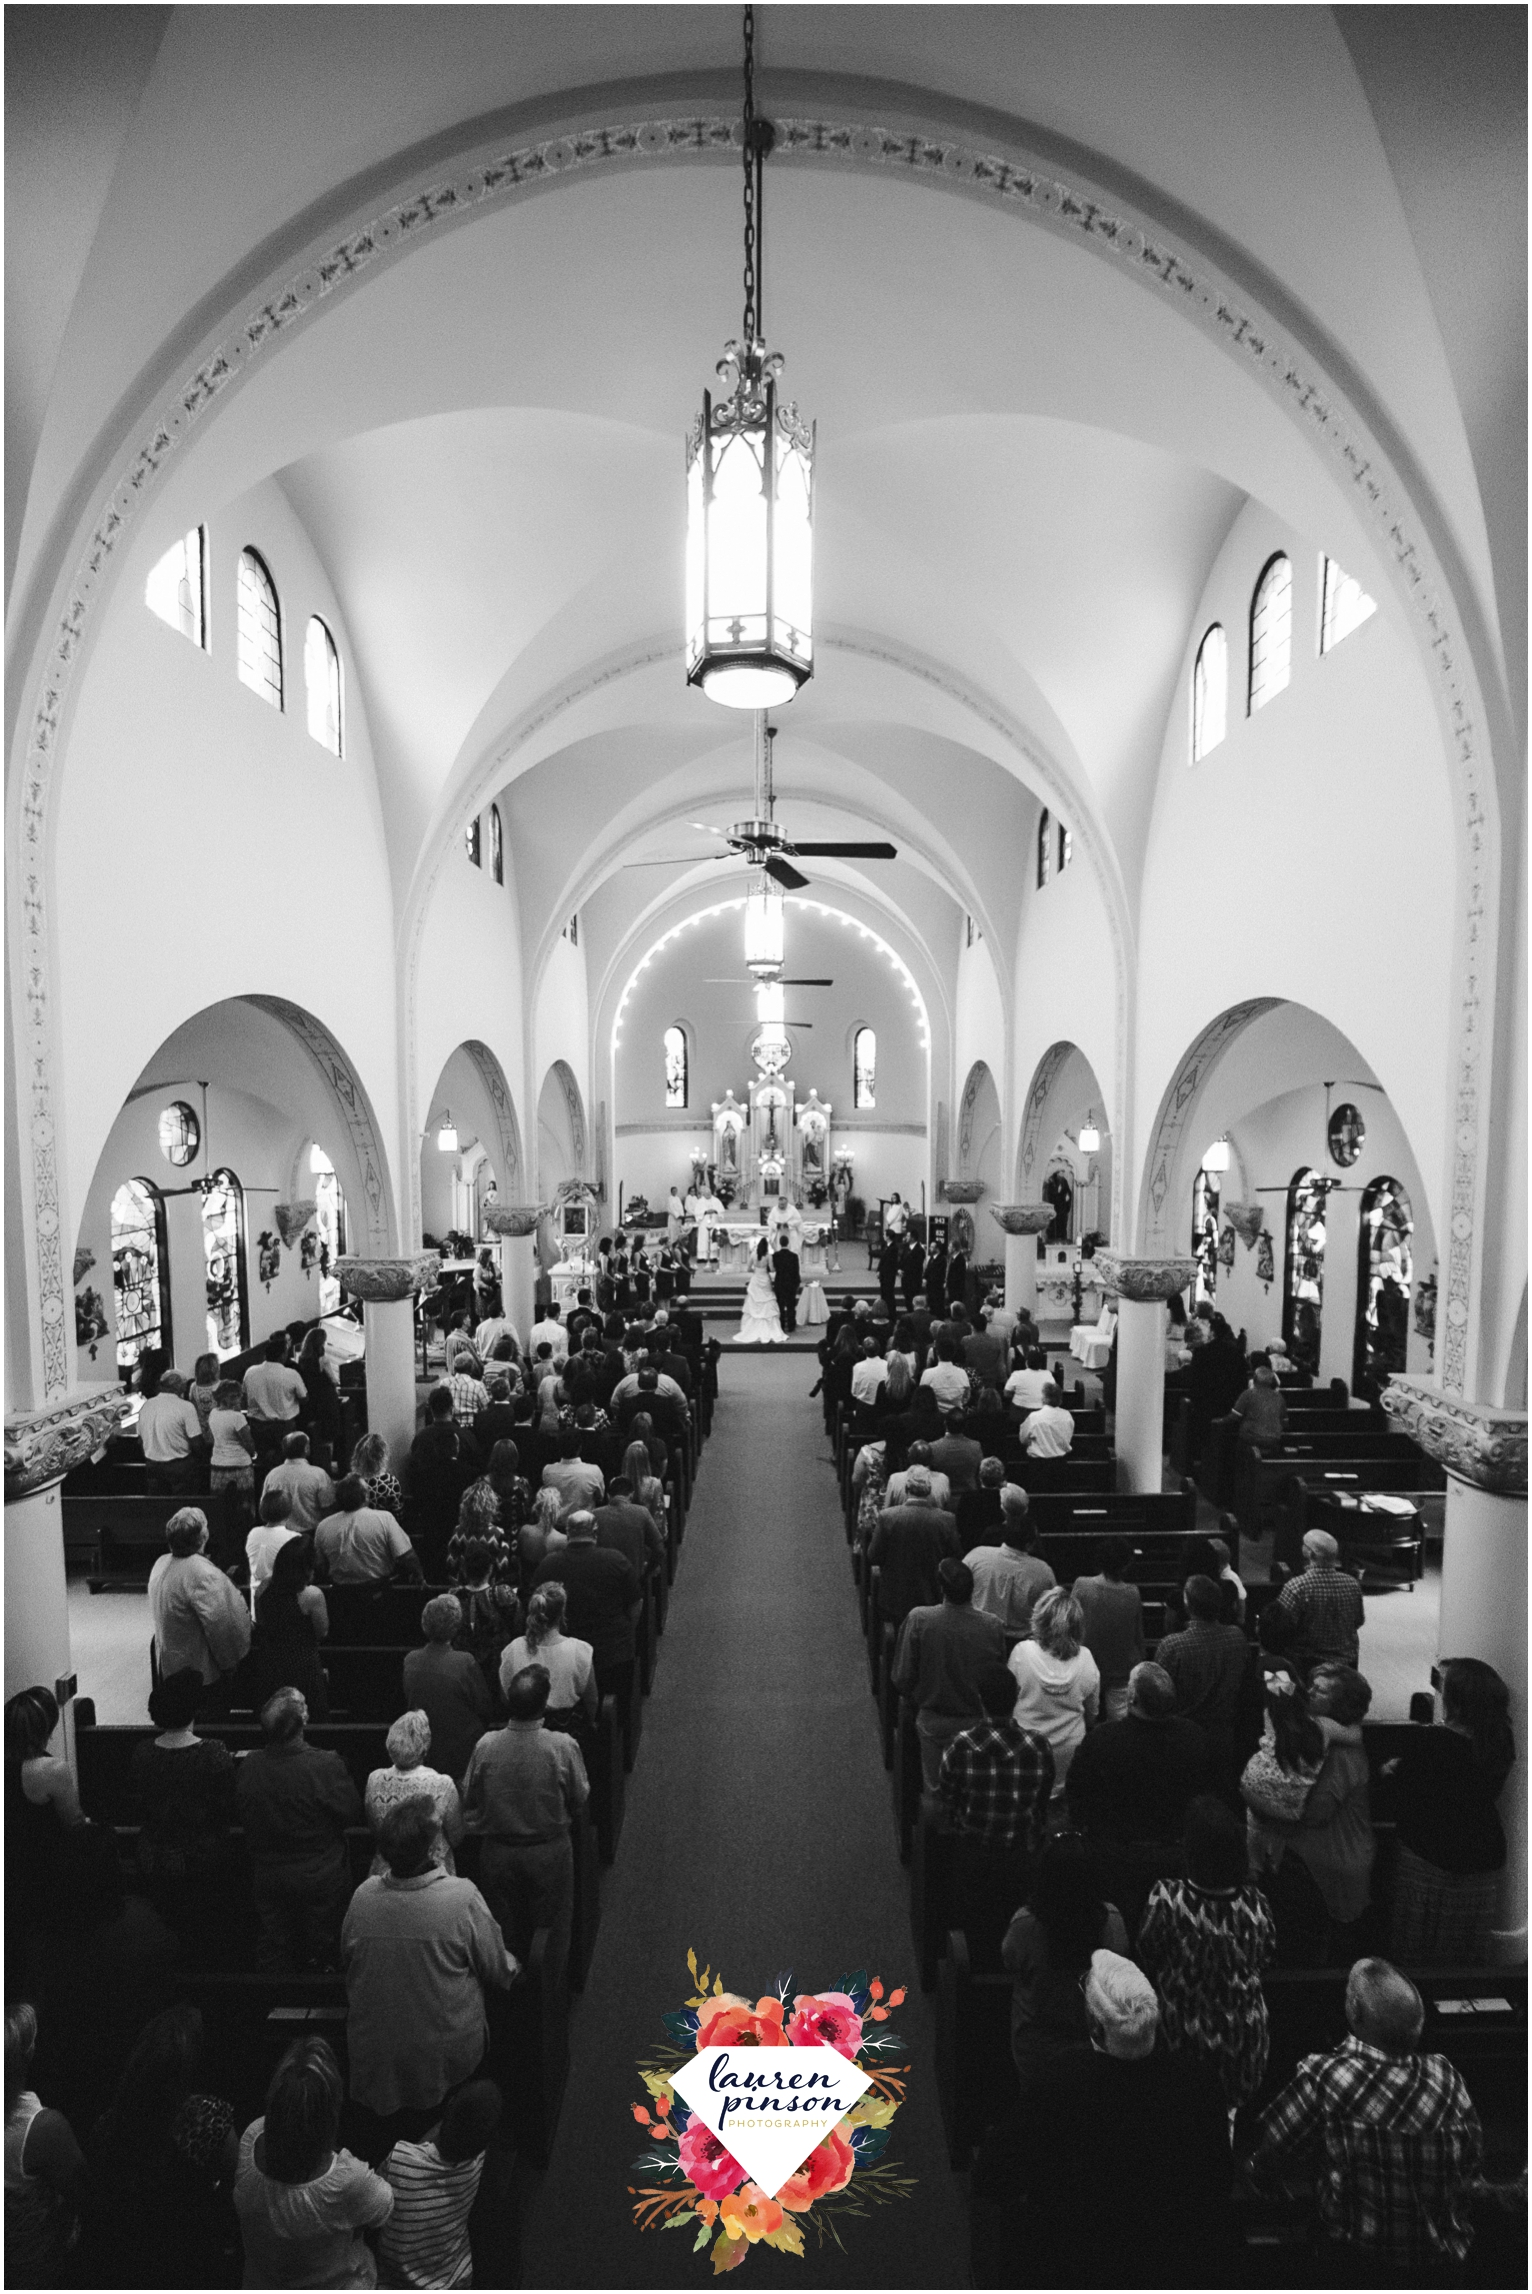 wichita-falls-wedding-photographer-OUR-Lady-queen-of-peace-catholic-wedding-the-forum-photography_0929.jpg